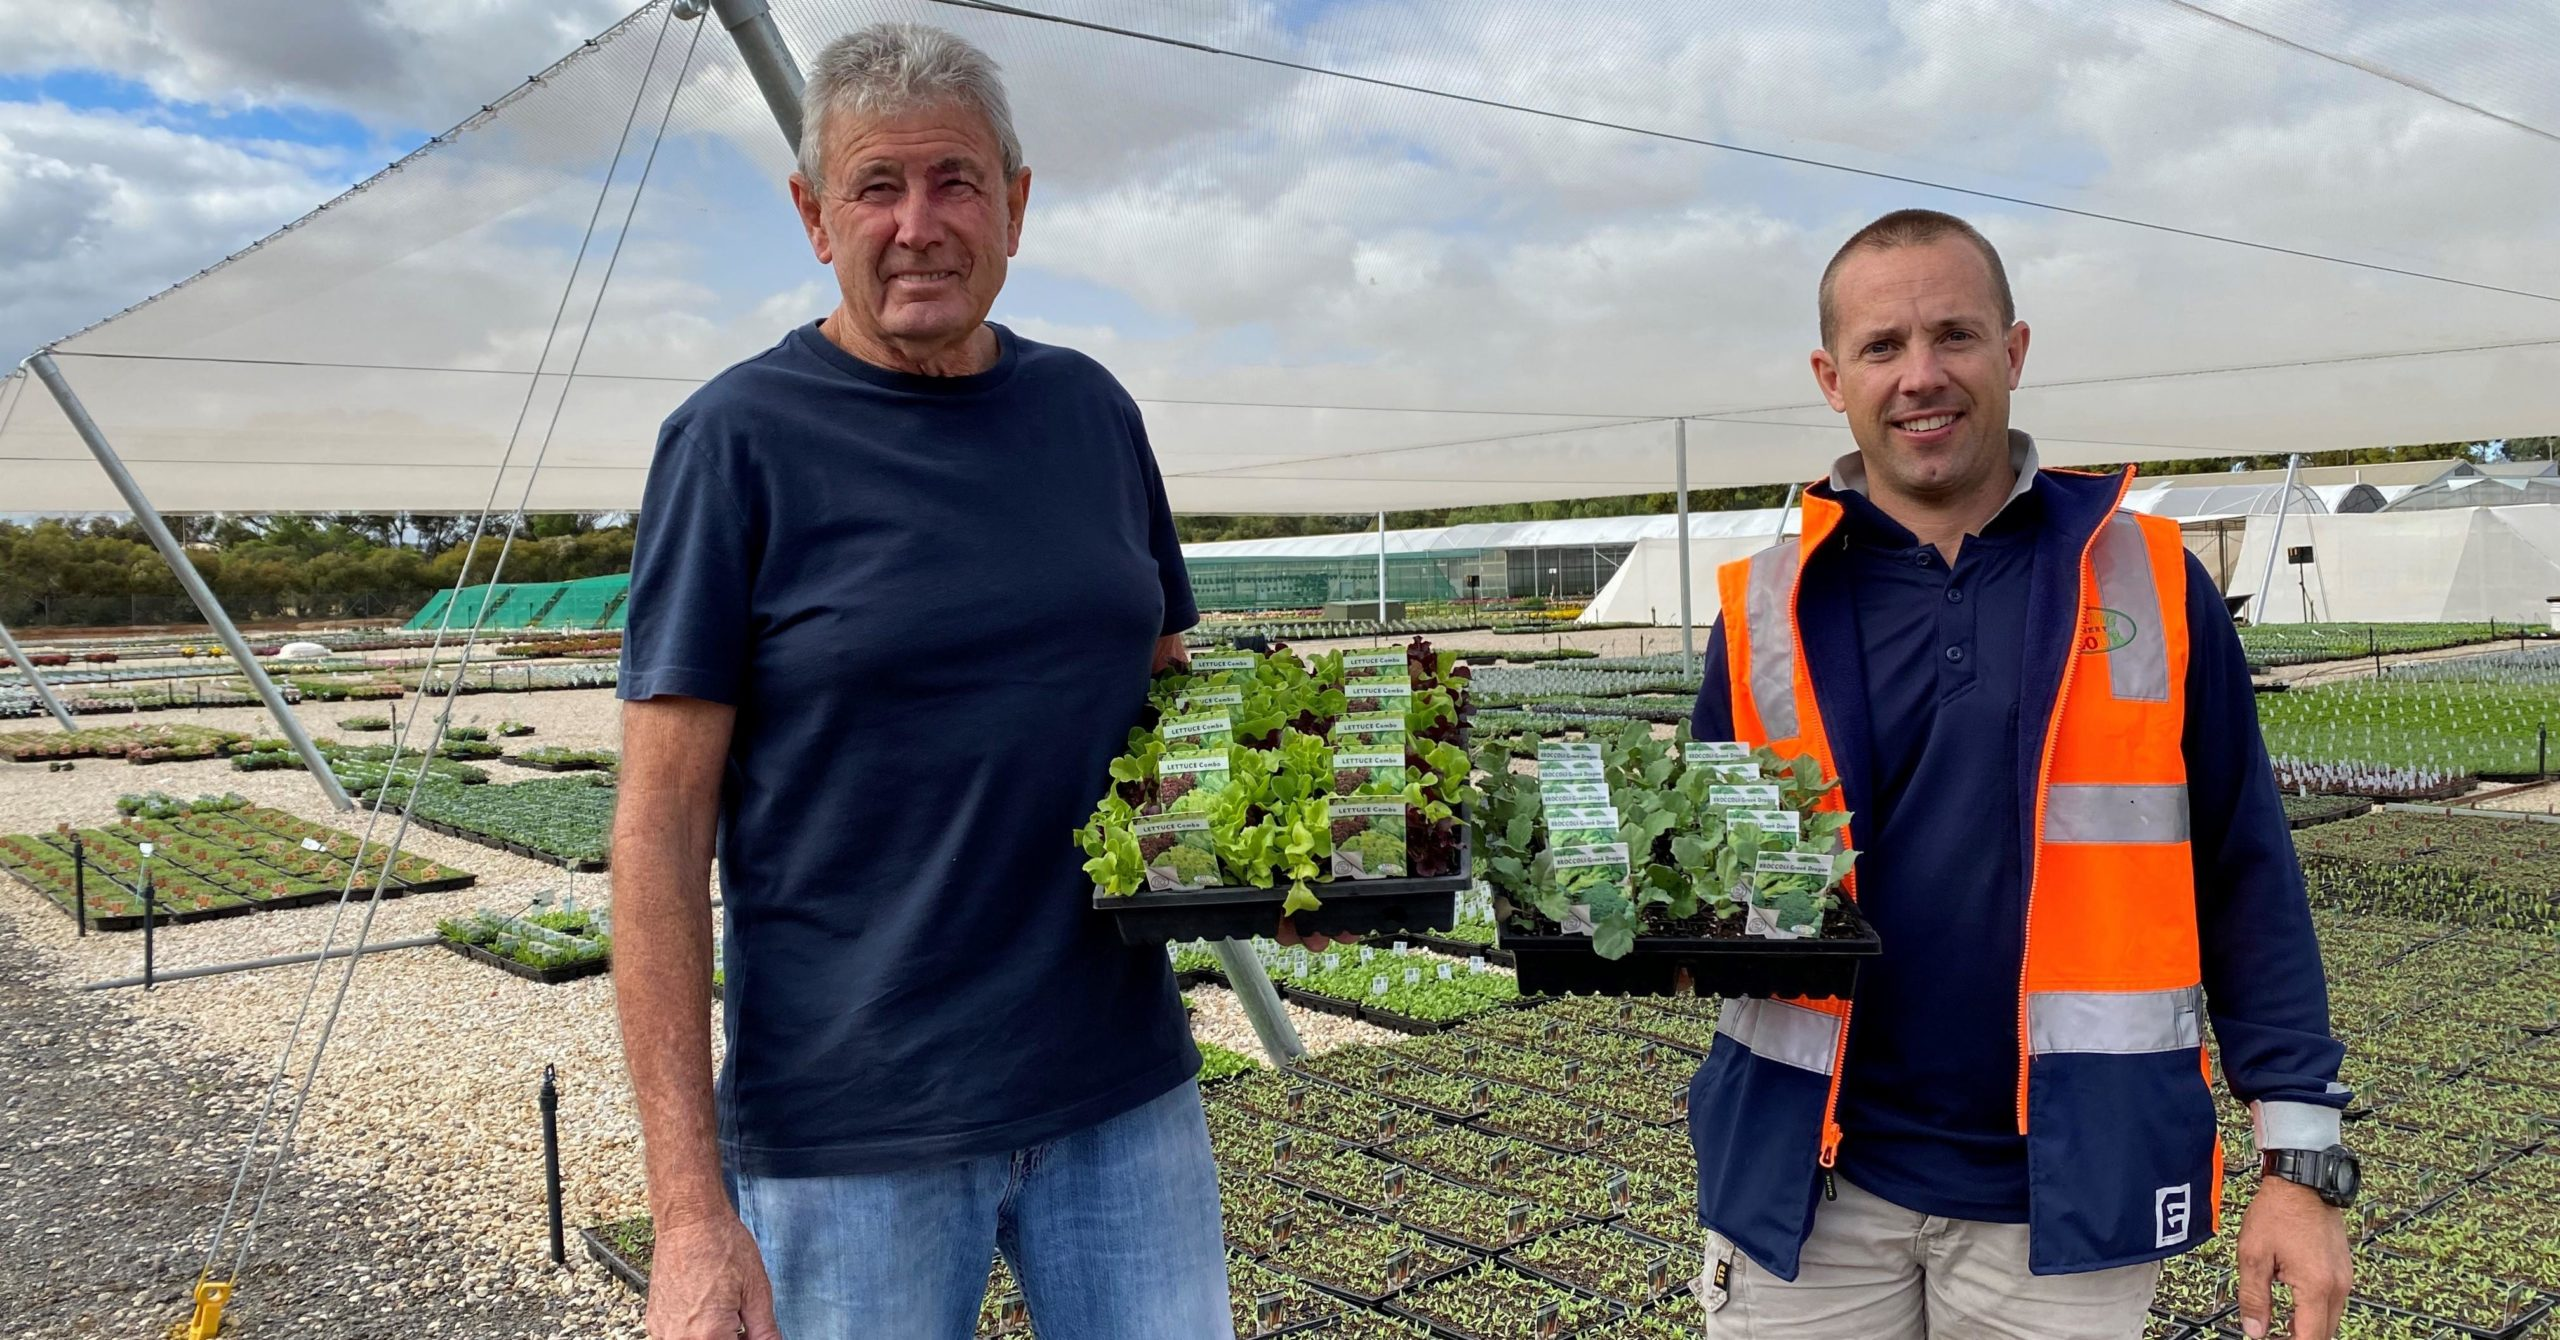 Nursery Triples Production To Get Veggie Seedlings Back On Shelves Indaily